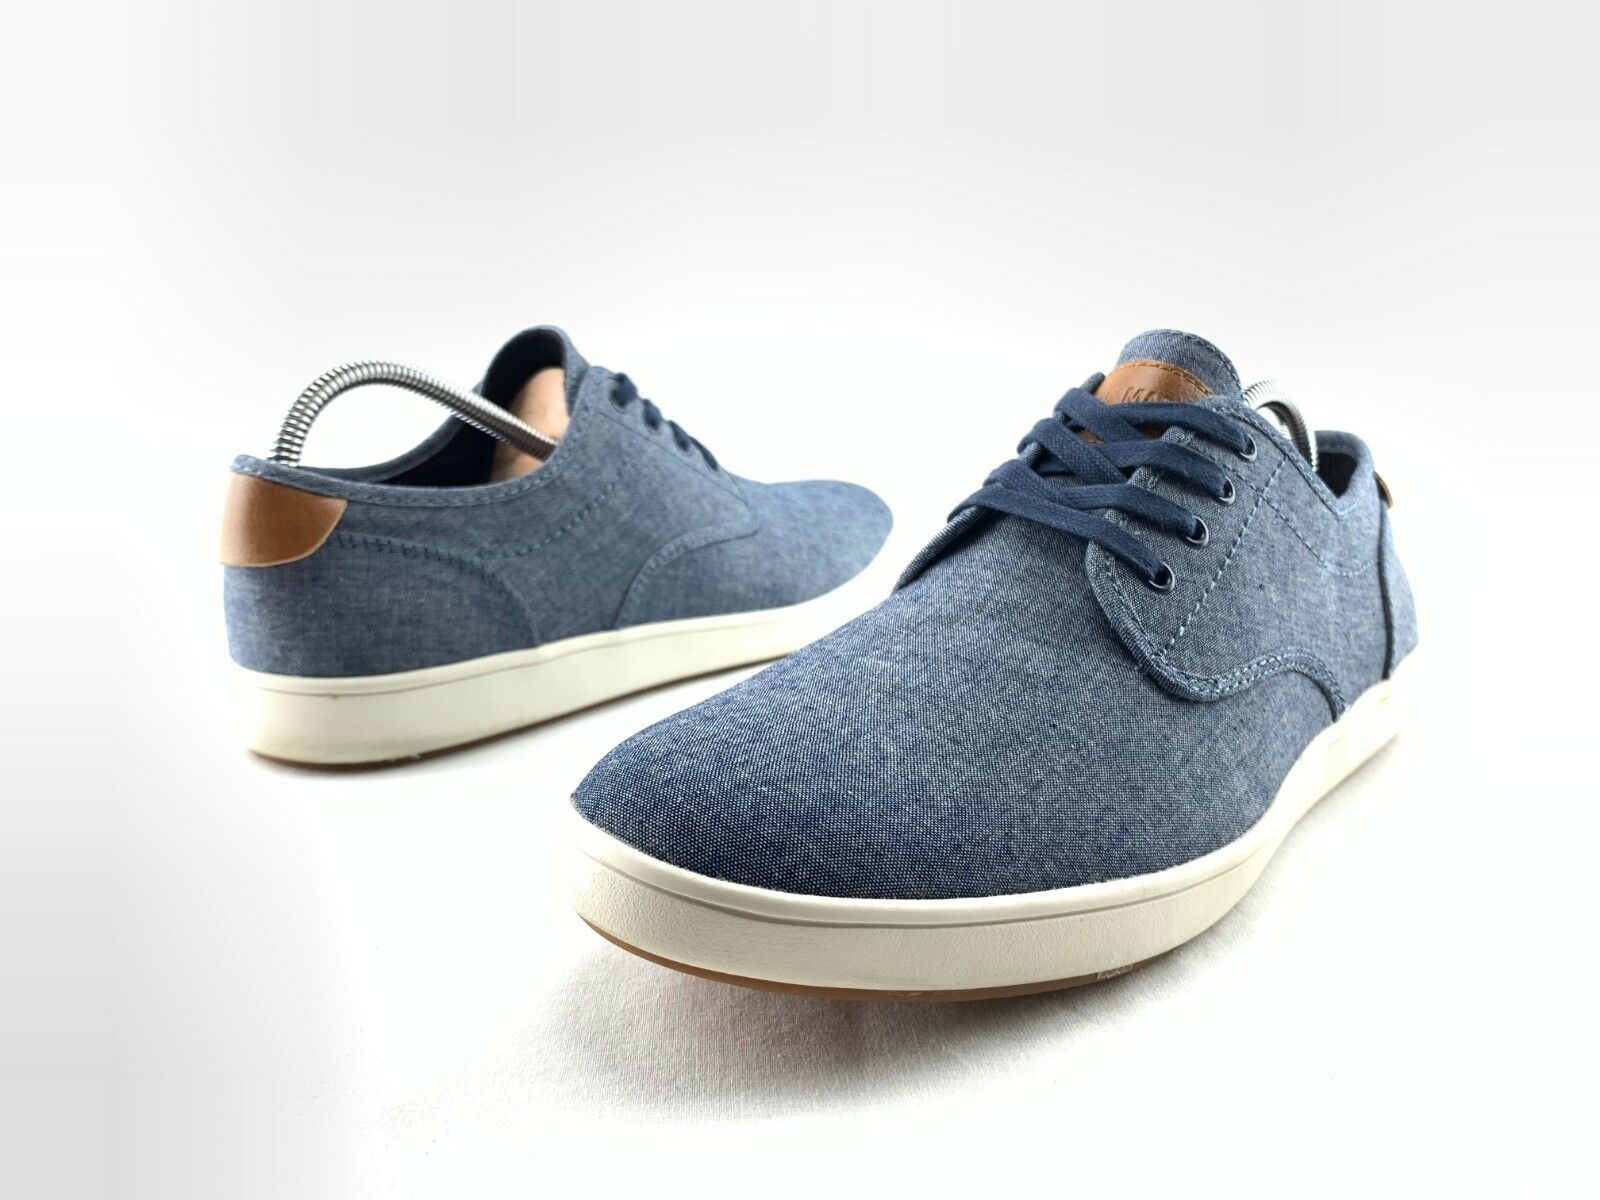 NEW Steve Madden Fenta Men's bluee Lace Up Casual Sneakers US 11 M shoes C842